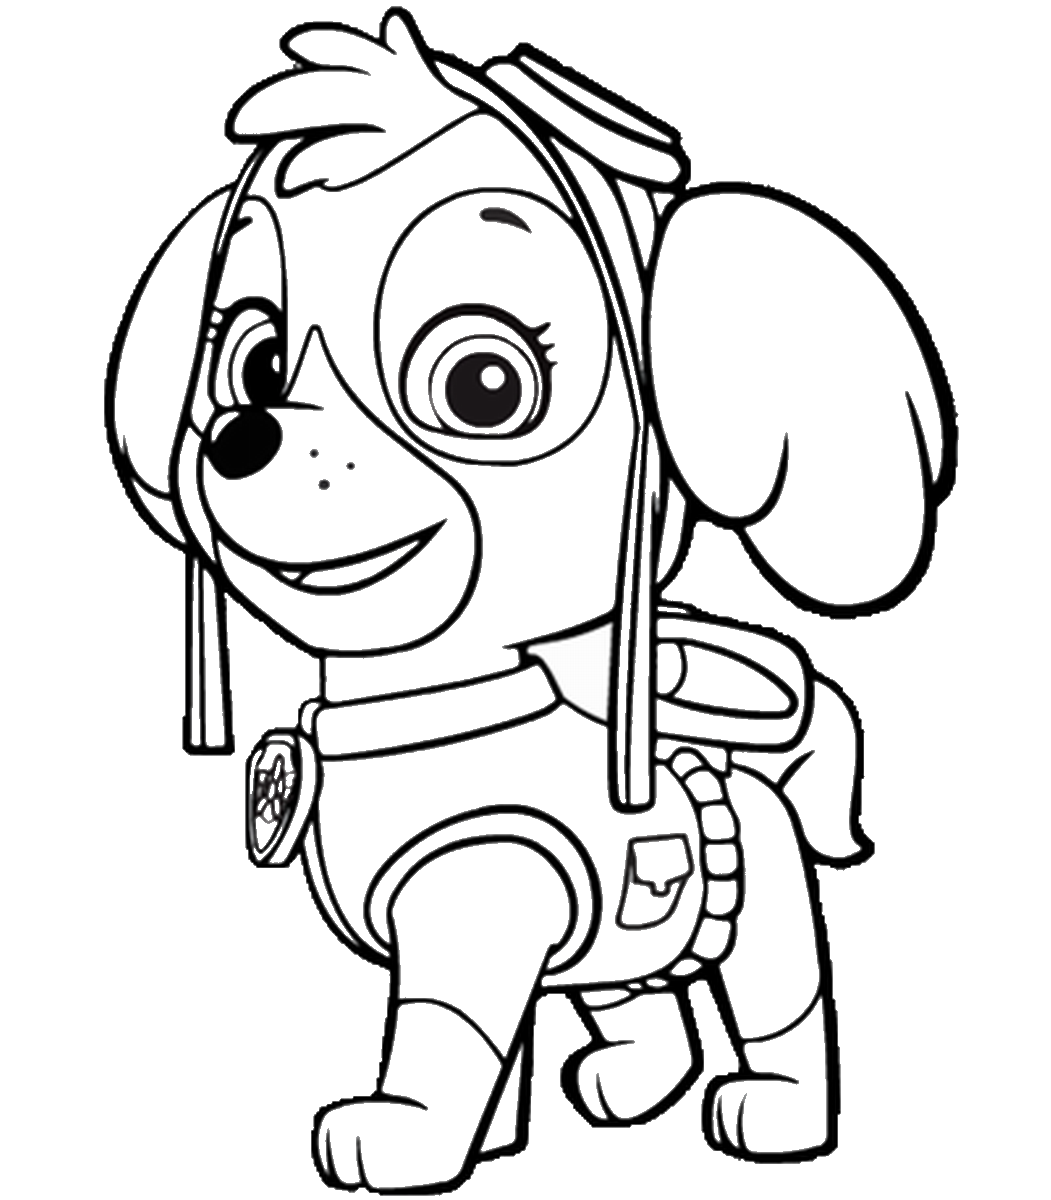 paw patrol coloring paw patrol coloring pages best coloring pages for kids patrol coloring paw